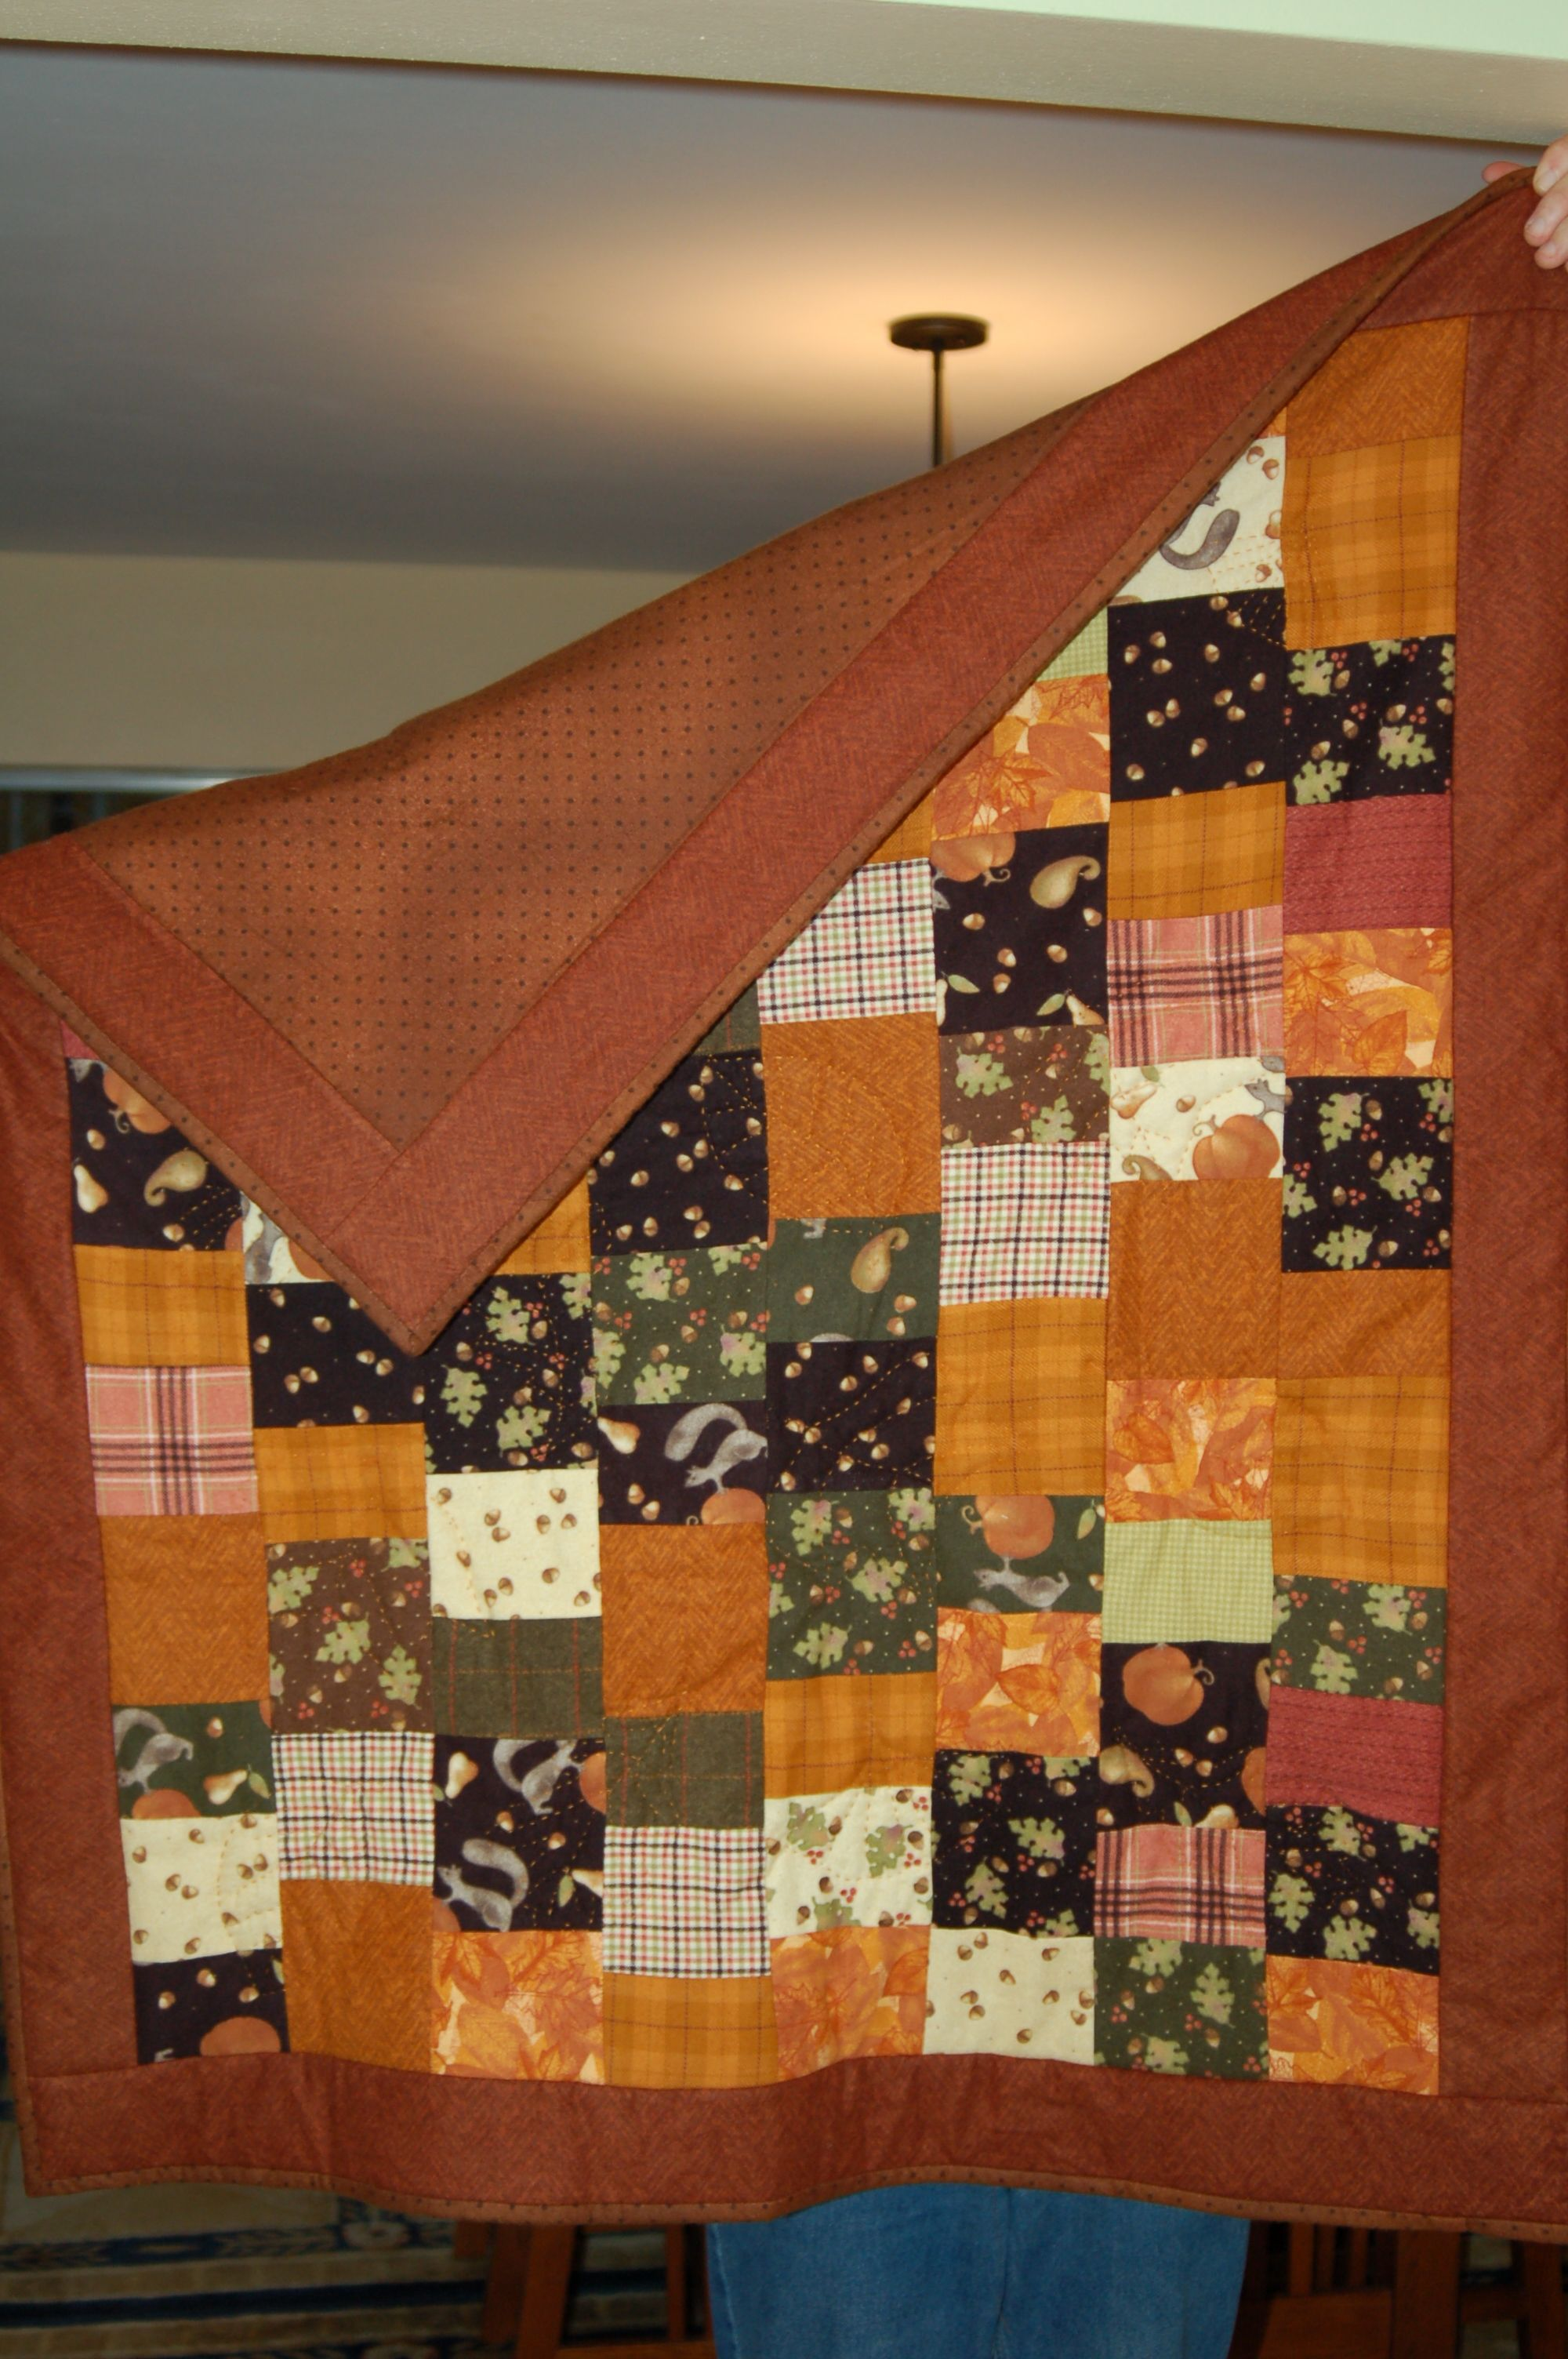 flannel quilt I made for third grandson, quilted with 5 different leave shapes using embroidery floss